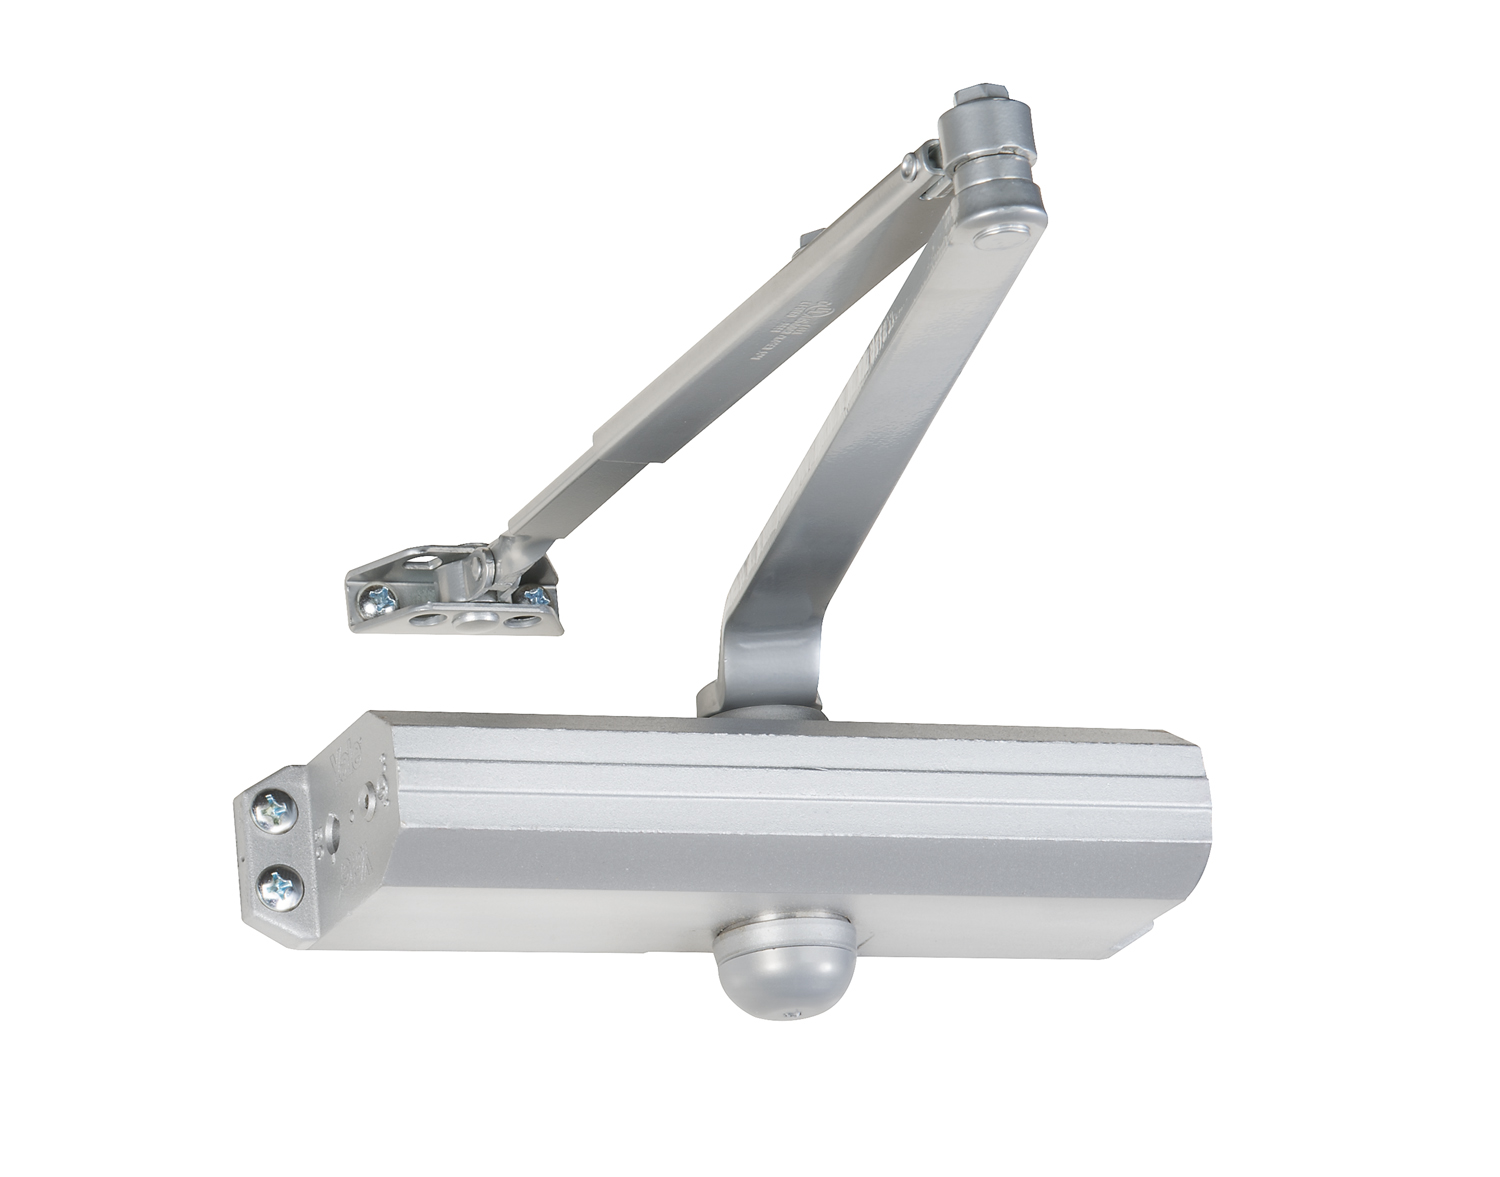 51 Series Industrial Door Closers  Assa Abloy. Glass Door With Dog Door. Sliding Door Installation. Angle Door Stop. Barn Doors Lowes. Garage Floor Stops For Cars. Car Stop For Garage. Out Door Carpet. Garage Door Repair Pensacola